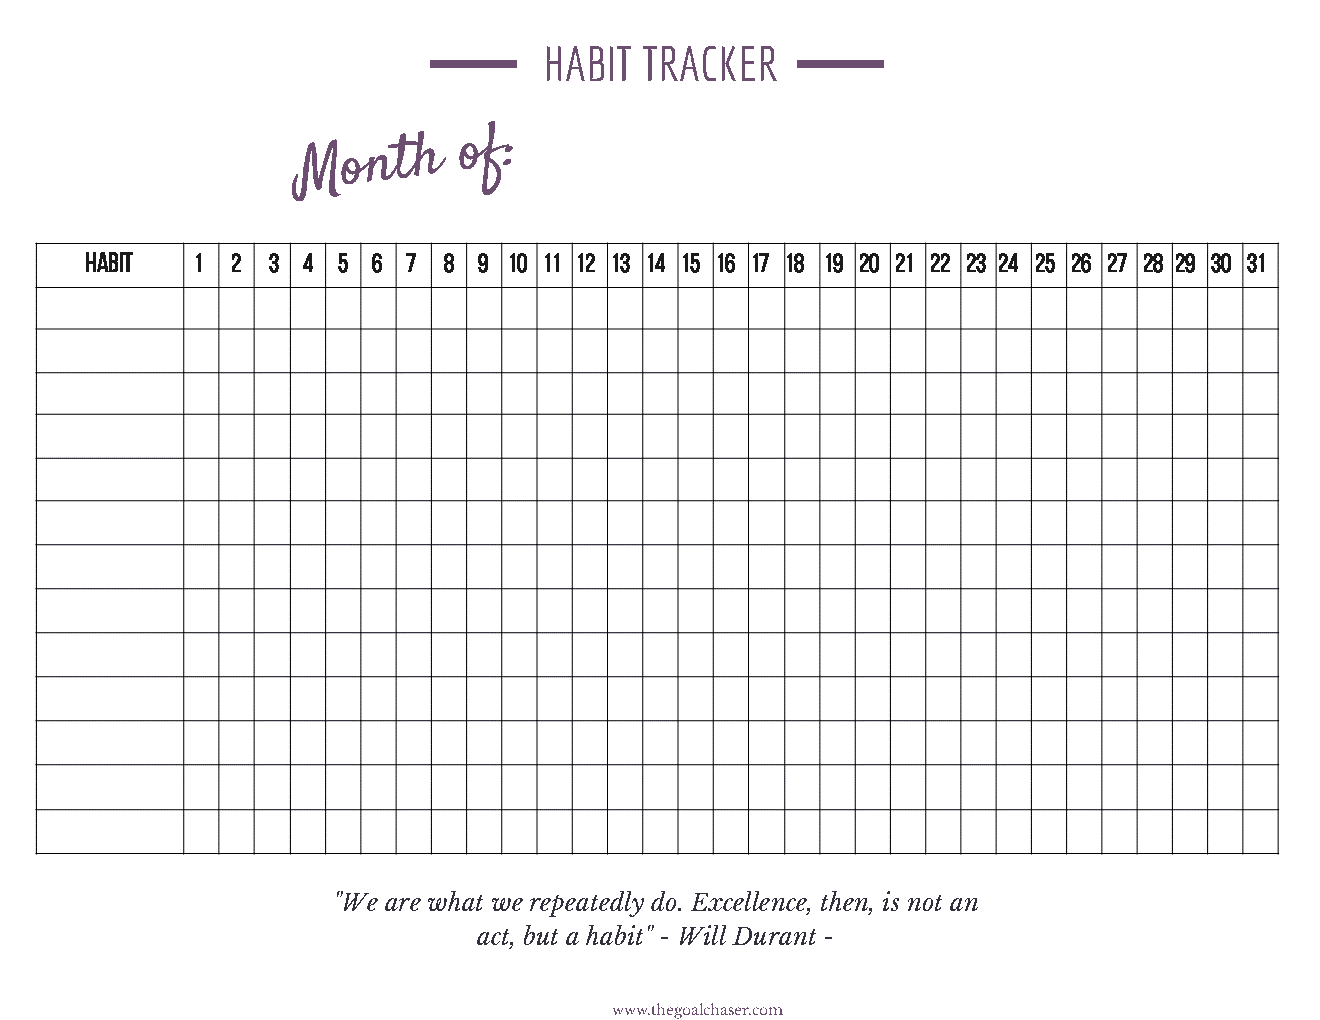 graphic relating to Habit Tracker Printable Free called How in direction of Mounted-Up A Behavior Tracker That Operates For On your own